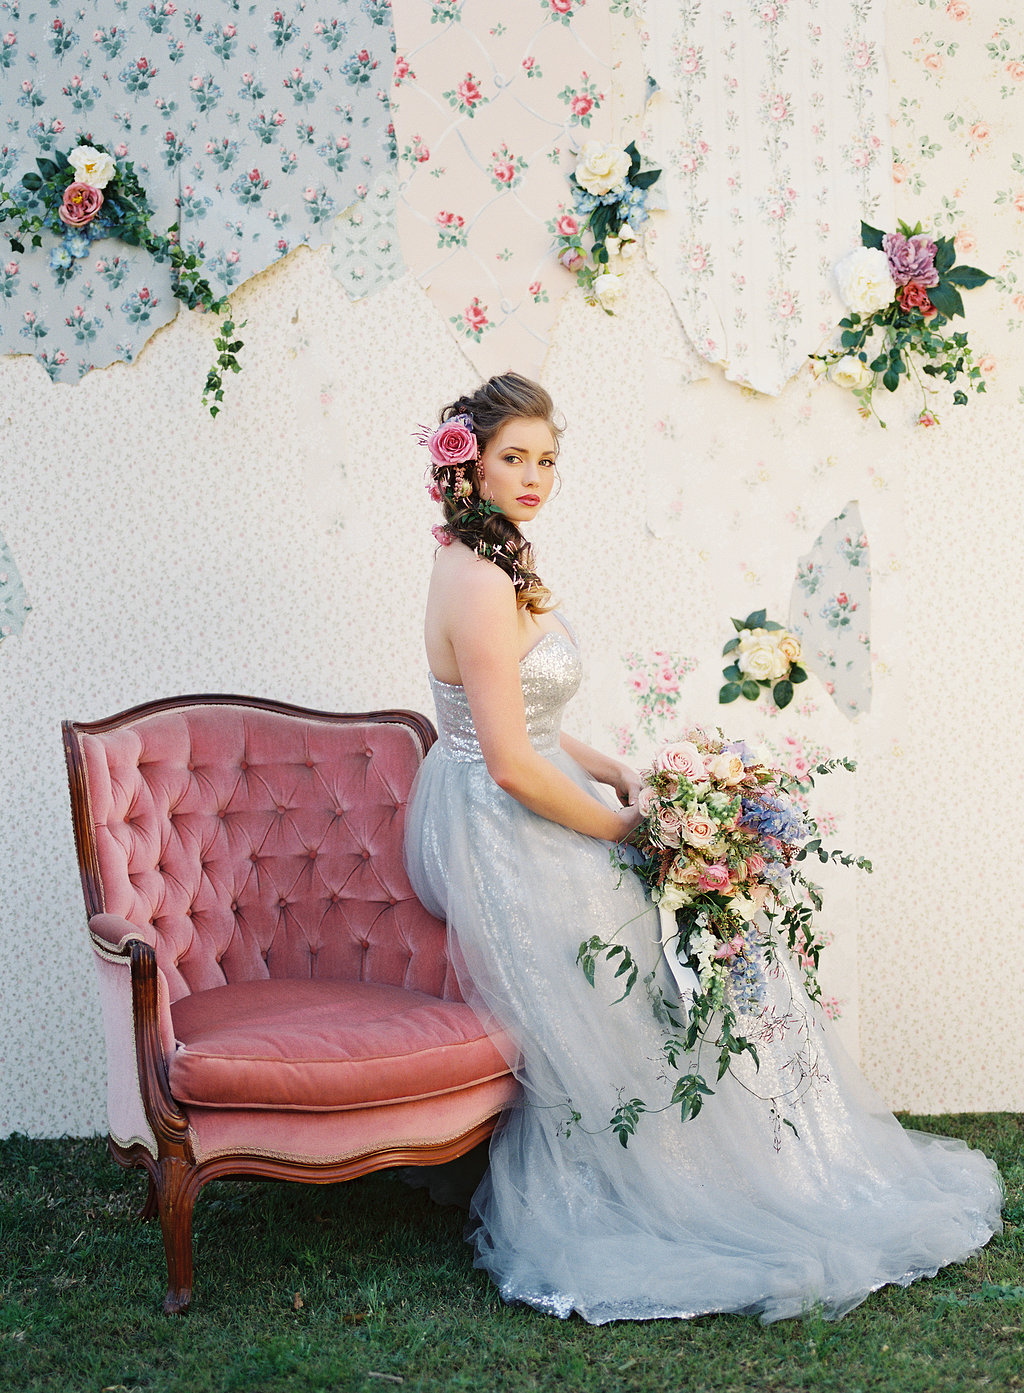 Vintage Wallpaper Backdrop for Tea & Niceties {Photography by Casey Jane Photography}